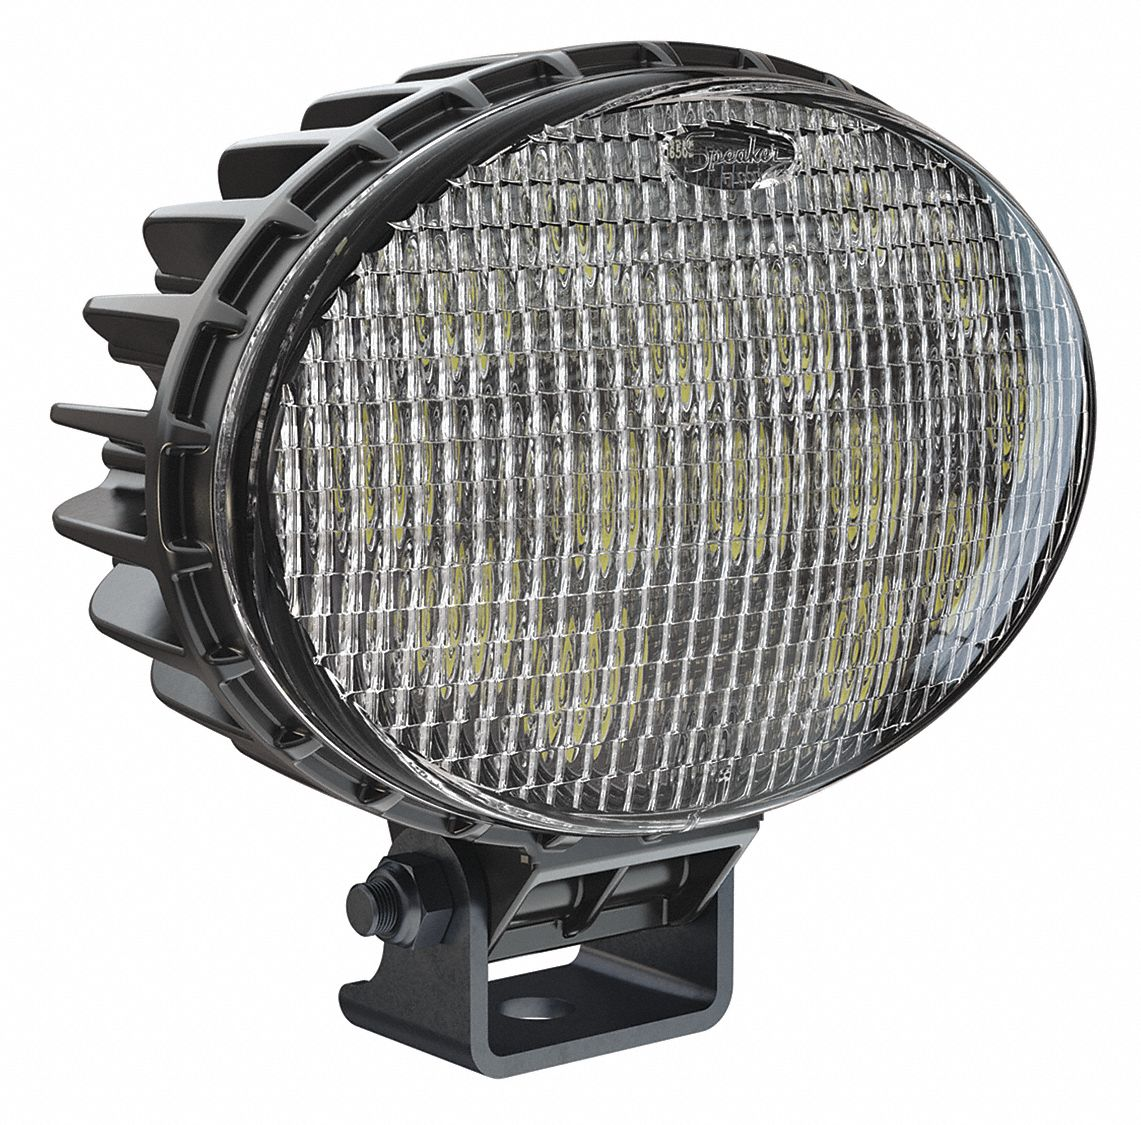 "Work Light, 5400 lm, Oval, LED, 6"" H"